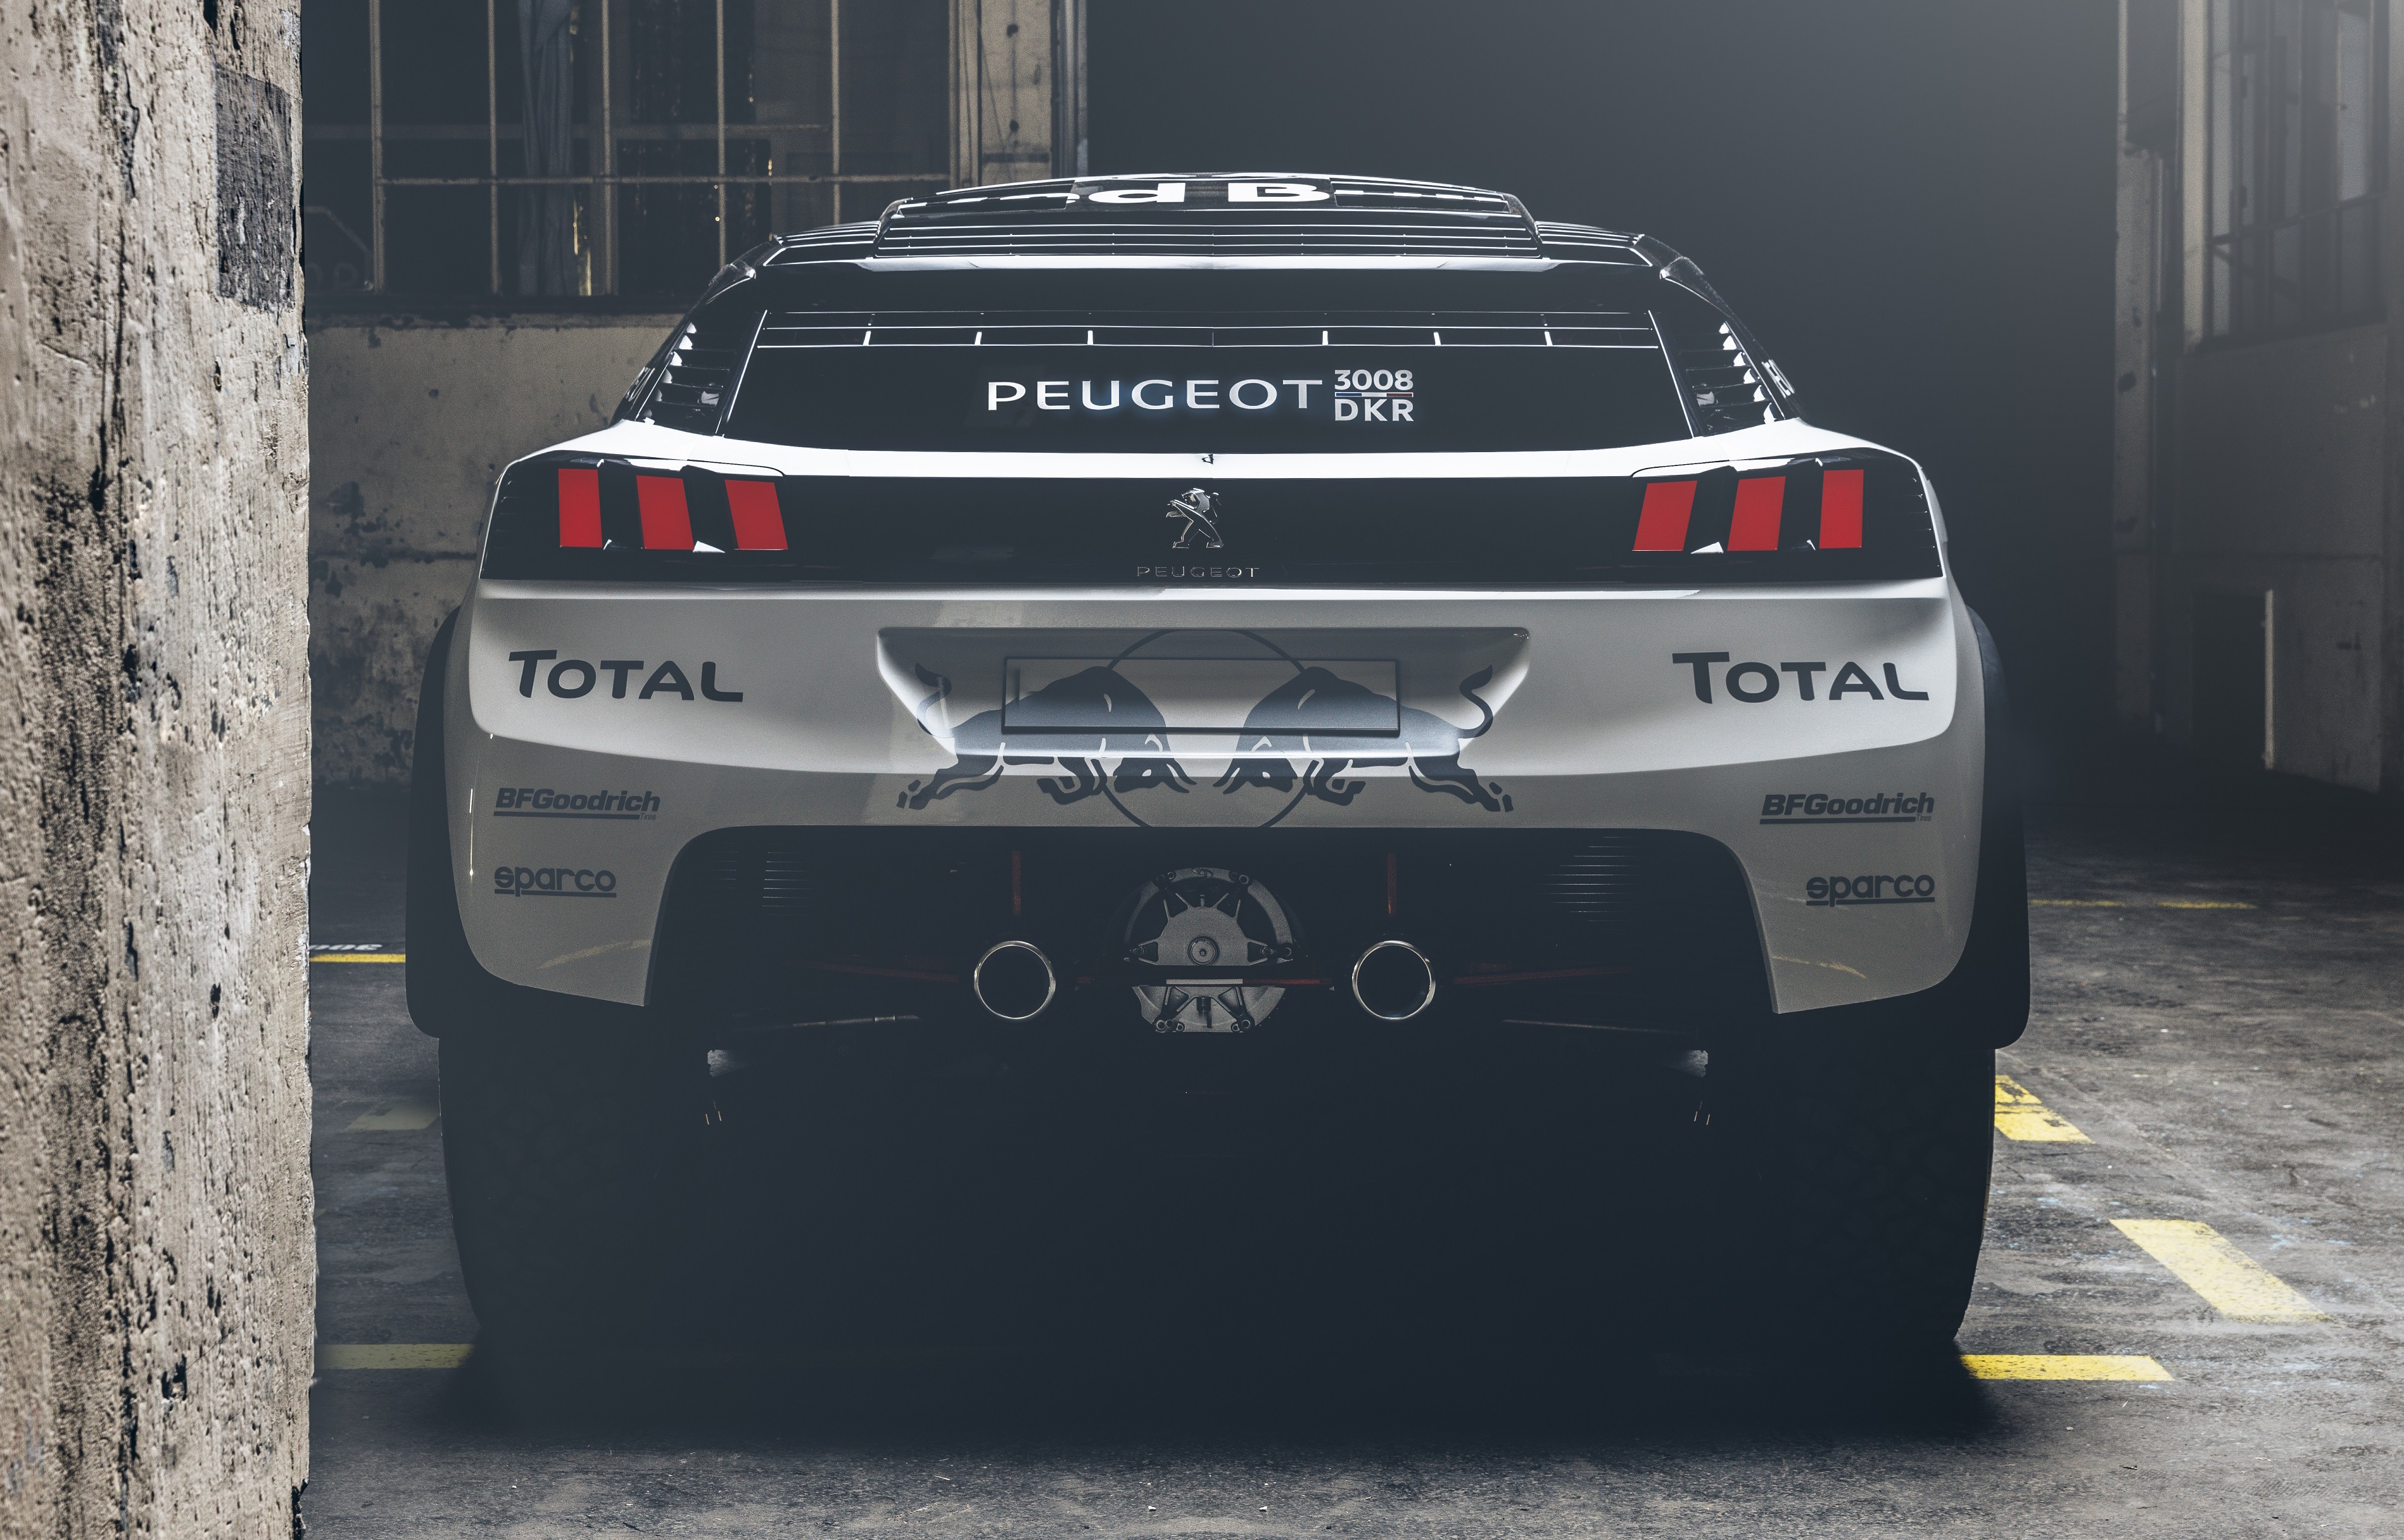 Peugeot 3008 Dkr To Lead 2017 Dakar Rally Campaign Image